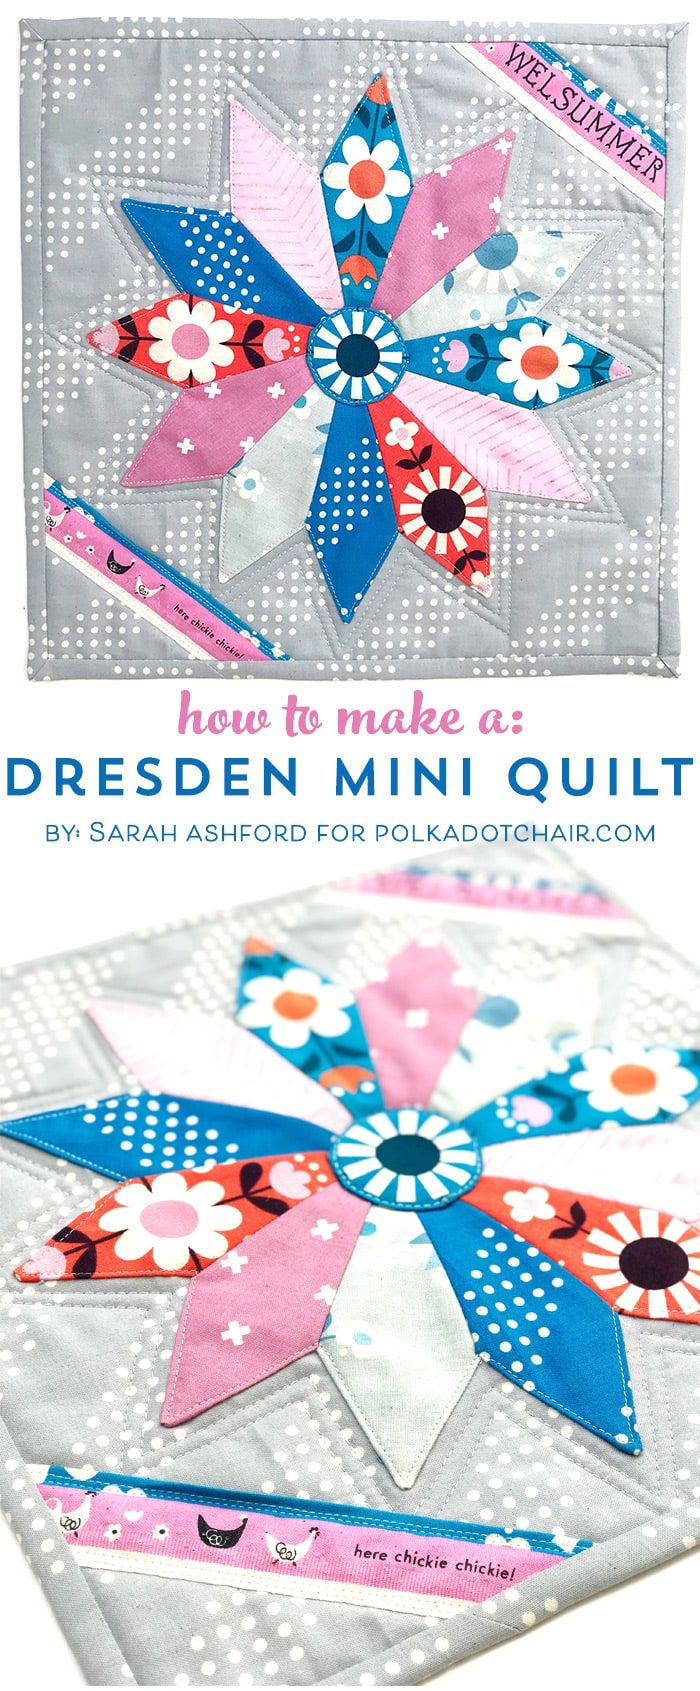 A free mini quilt pattern, a Dresden Plate Quilt. Learn how to make a dresden plate on polkadotchair.com #dresdenplate #miniquilt #miniquiltpattern #miniquiltpatterns #dresdenplatequilt